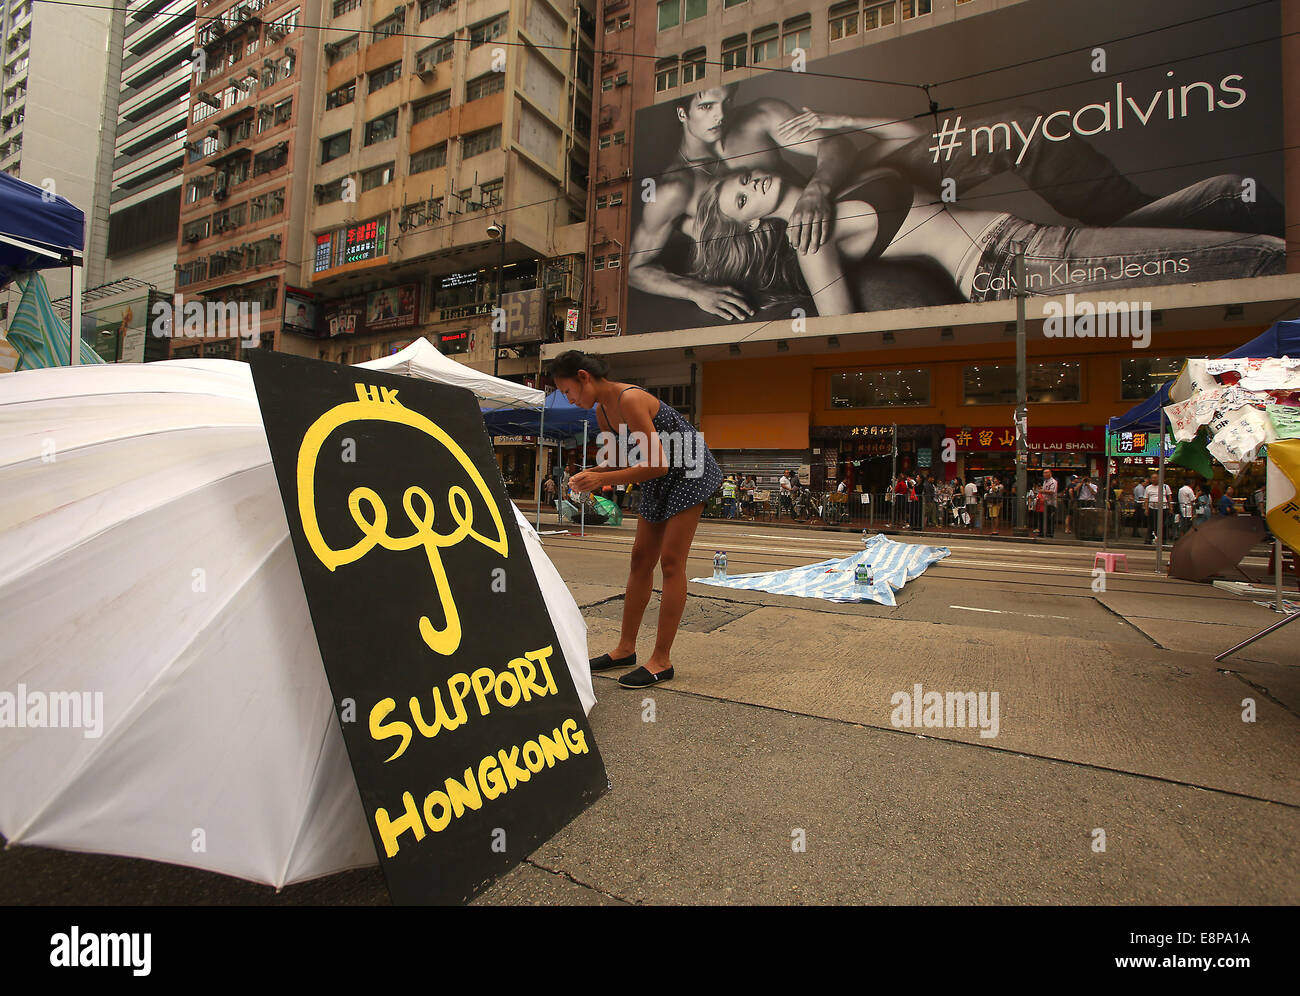 Hong Kong, CHINA. 9th Oct, 2014. A small group of pro-democracy activists continue to shut down important thoroughfares - Stock Image